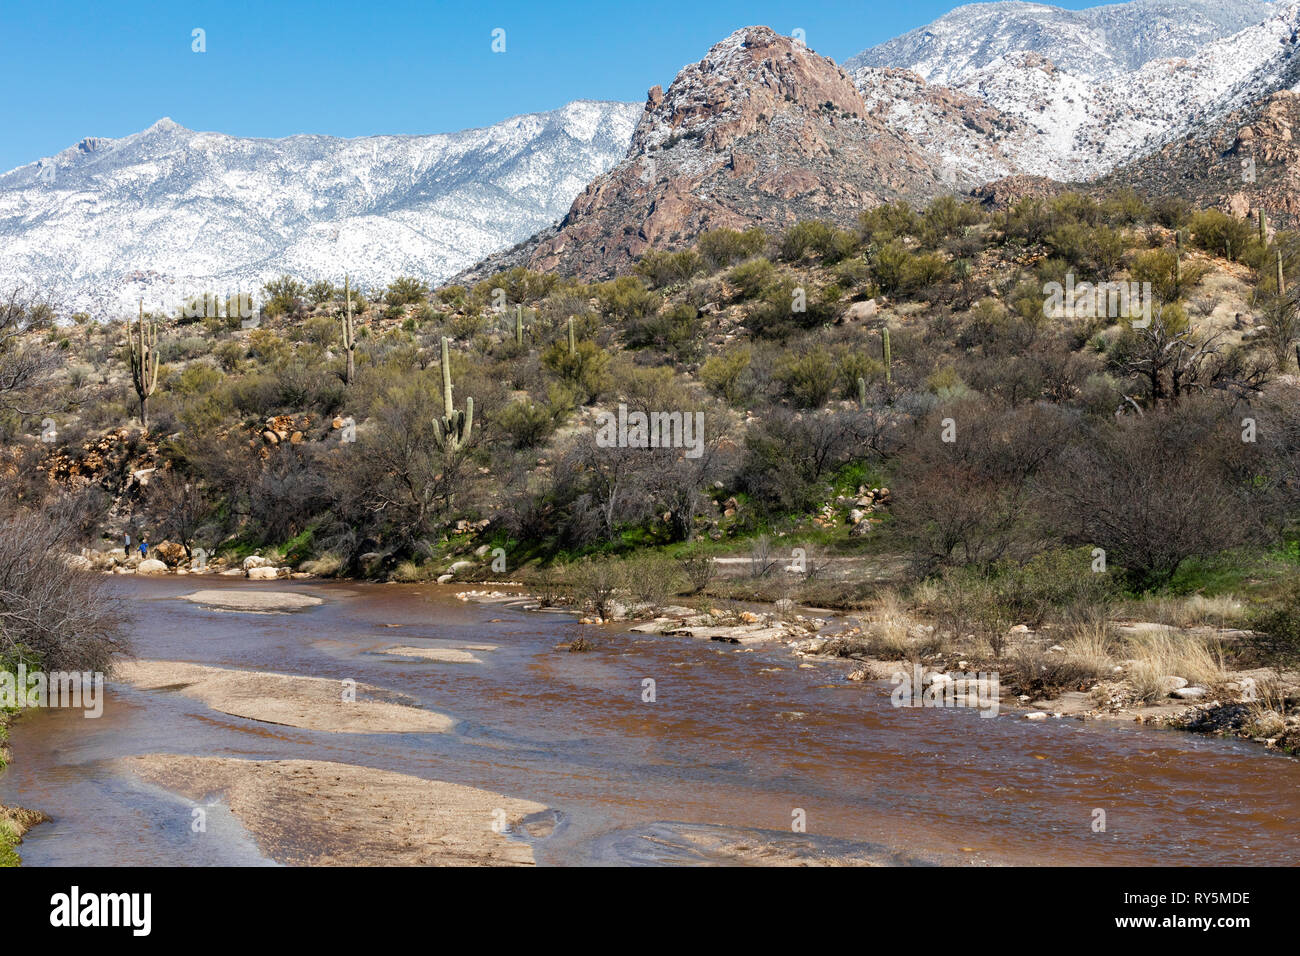 Sutherland Wash flowing after a winter storm, snow on the Santa Catalina Mountains in the distance, Catalina State Park, Tucson, Arizona - Stock Image